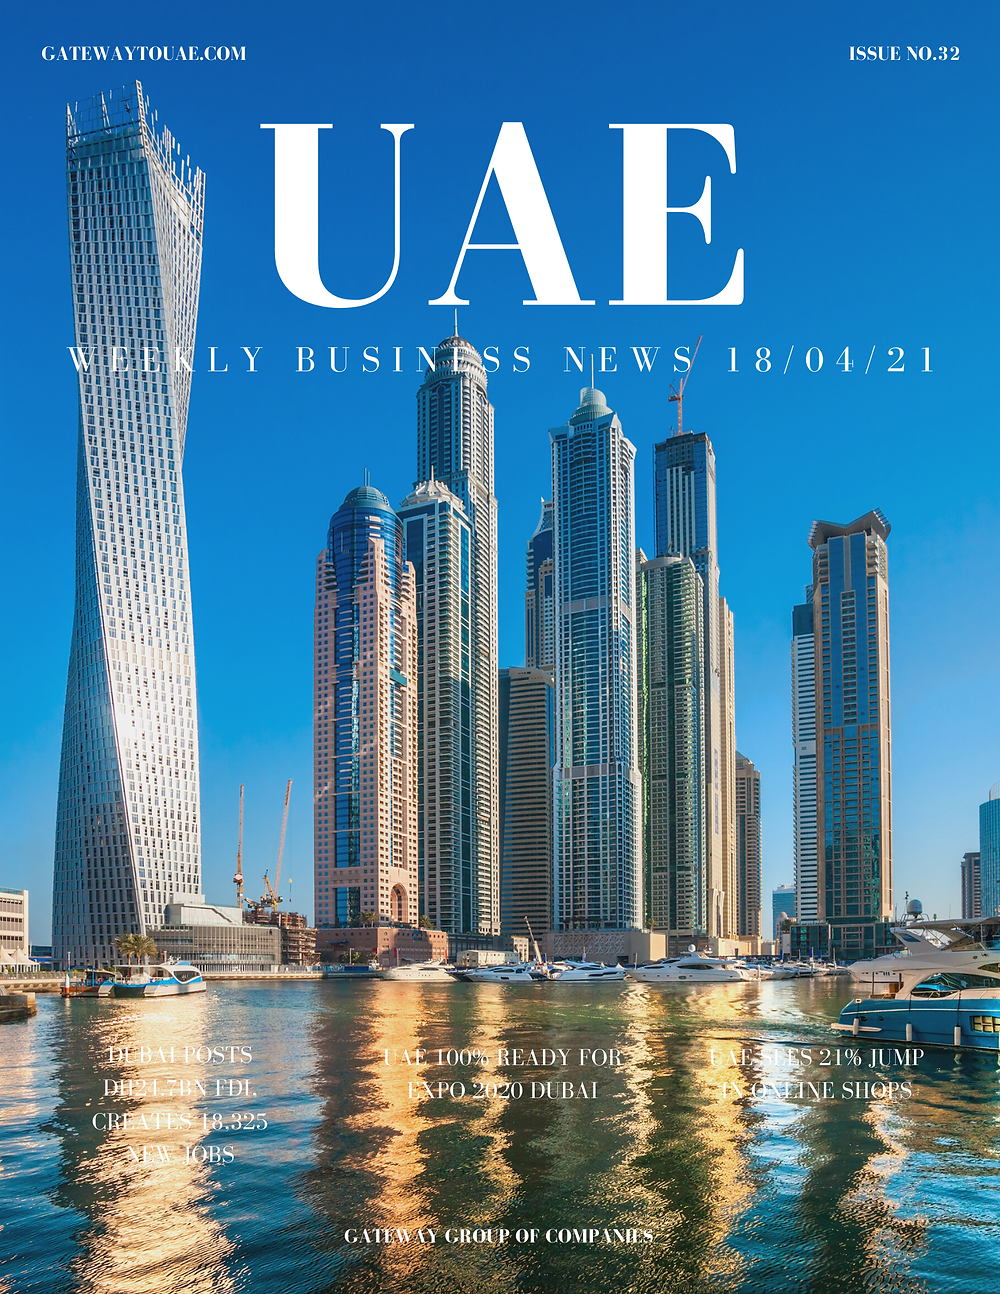 UAE weekly business news headlines 18th April 2021 Issue 32 Gateway Group Of Companies Abu Dhabi Dubai weekly magazine company formation business setup local sponsor service agent visas company formation authority trade licence license